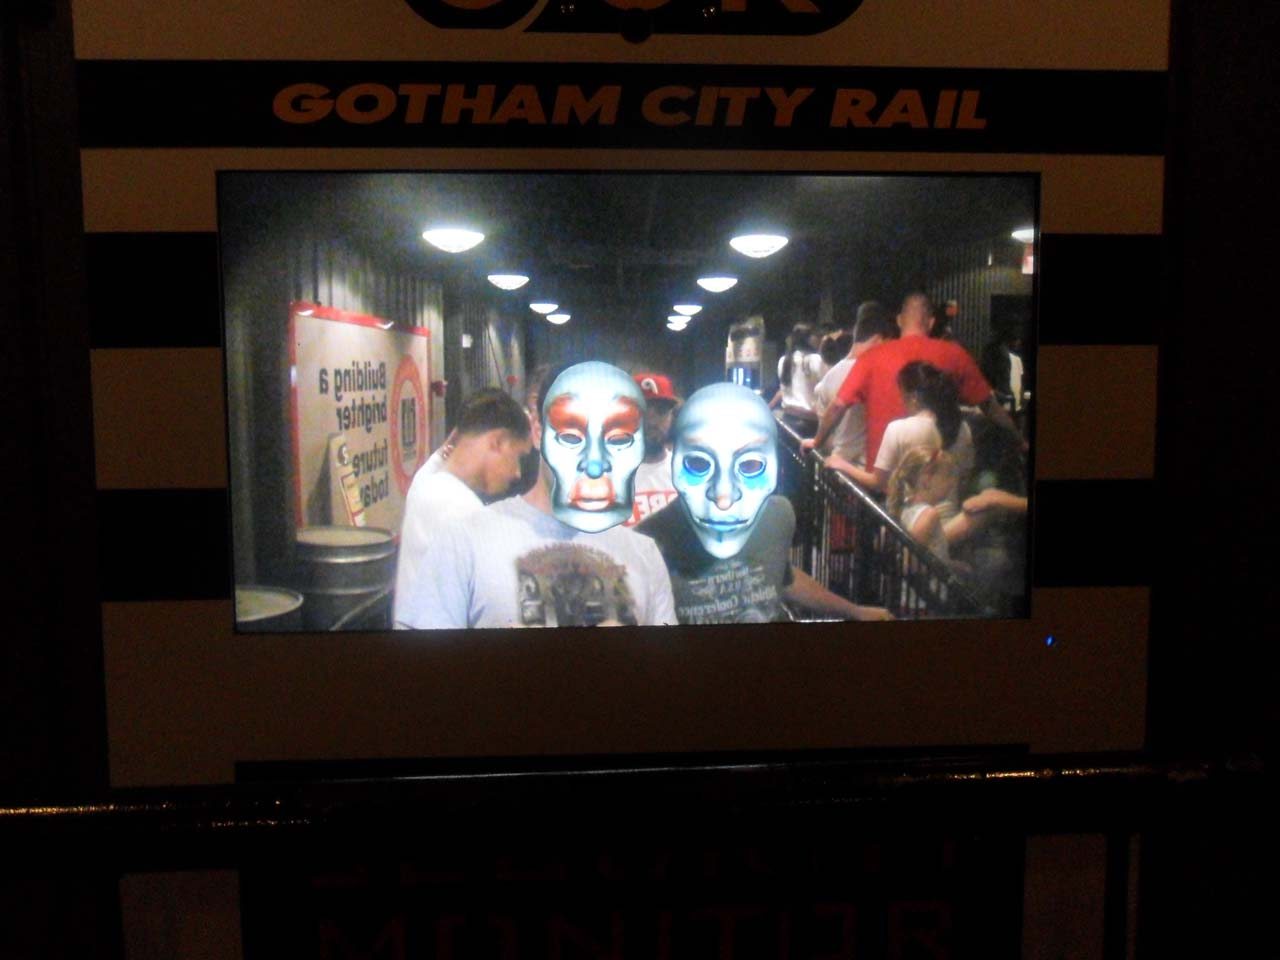 Gotham City Rail